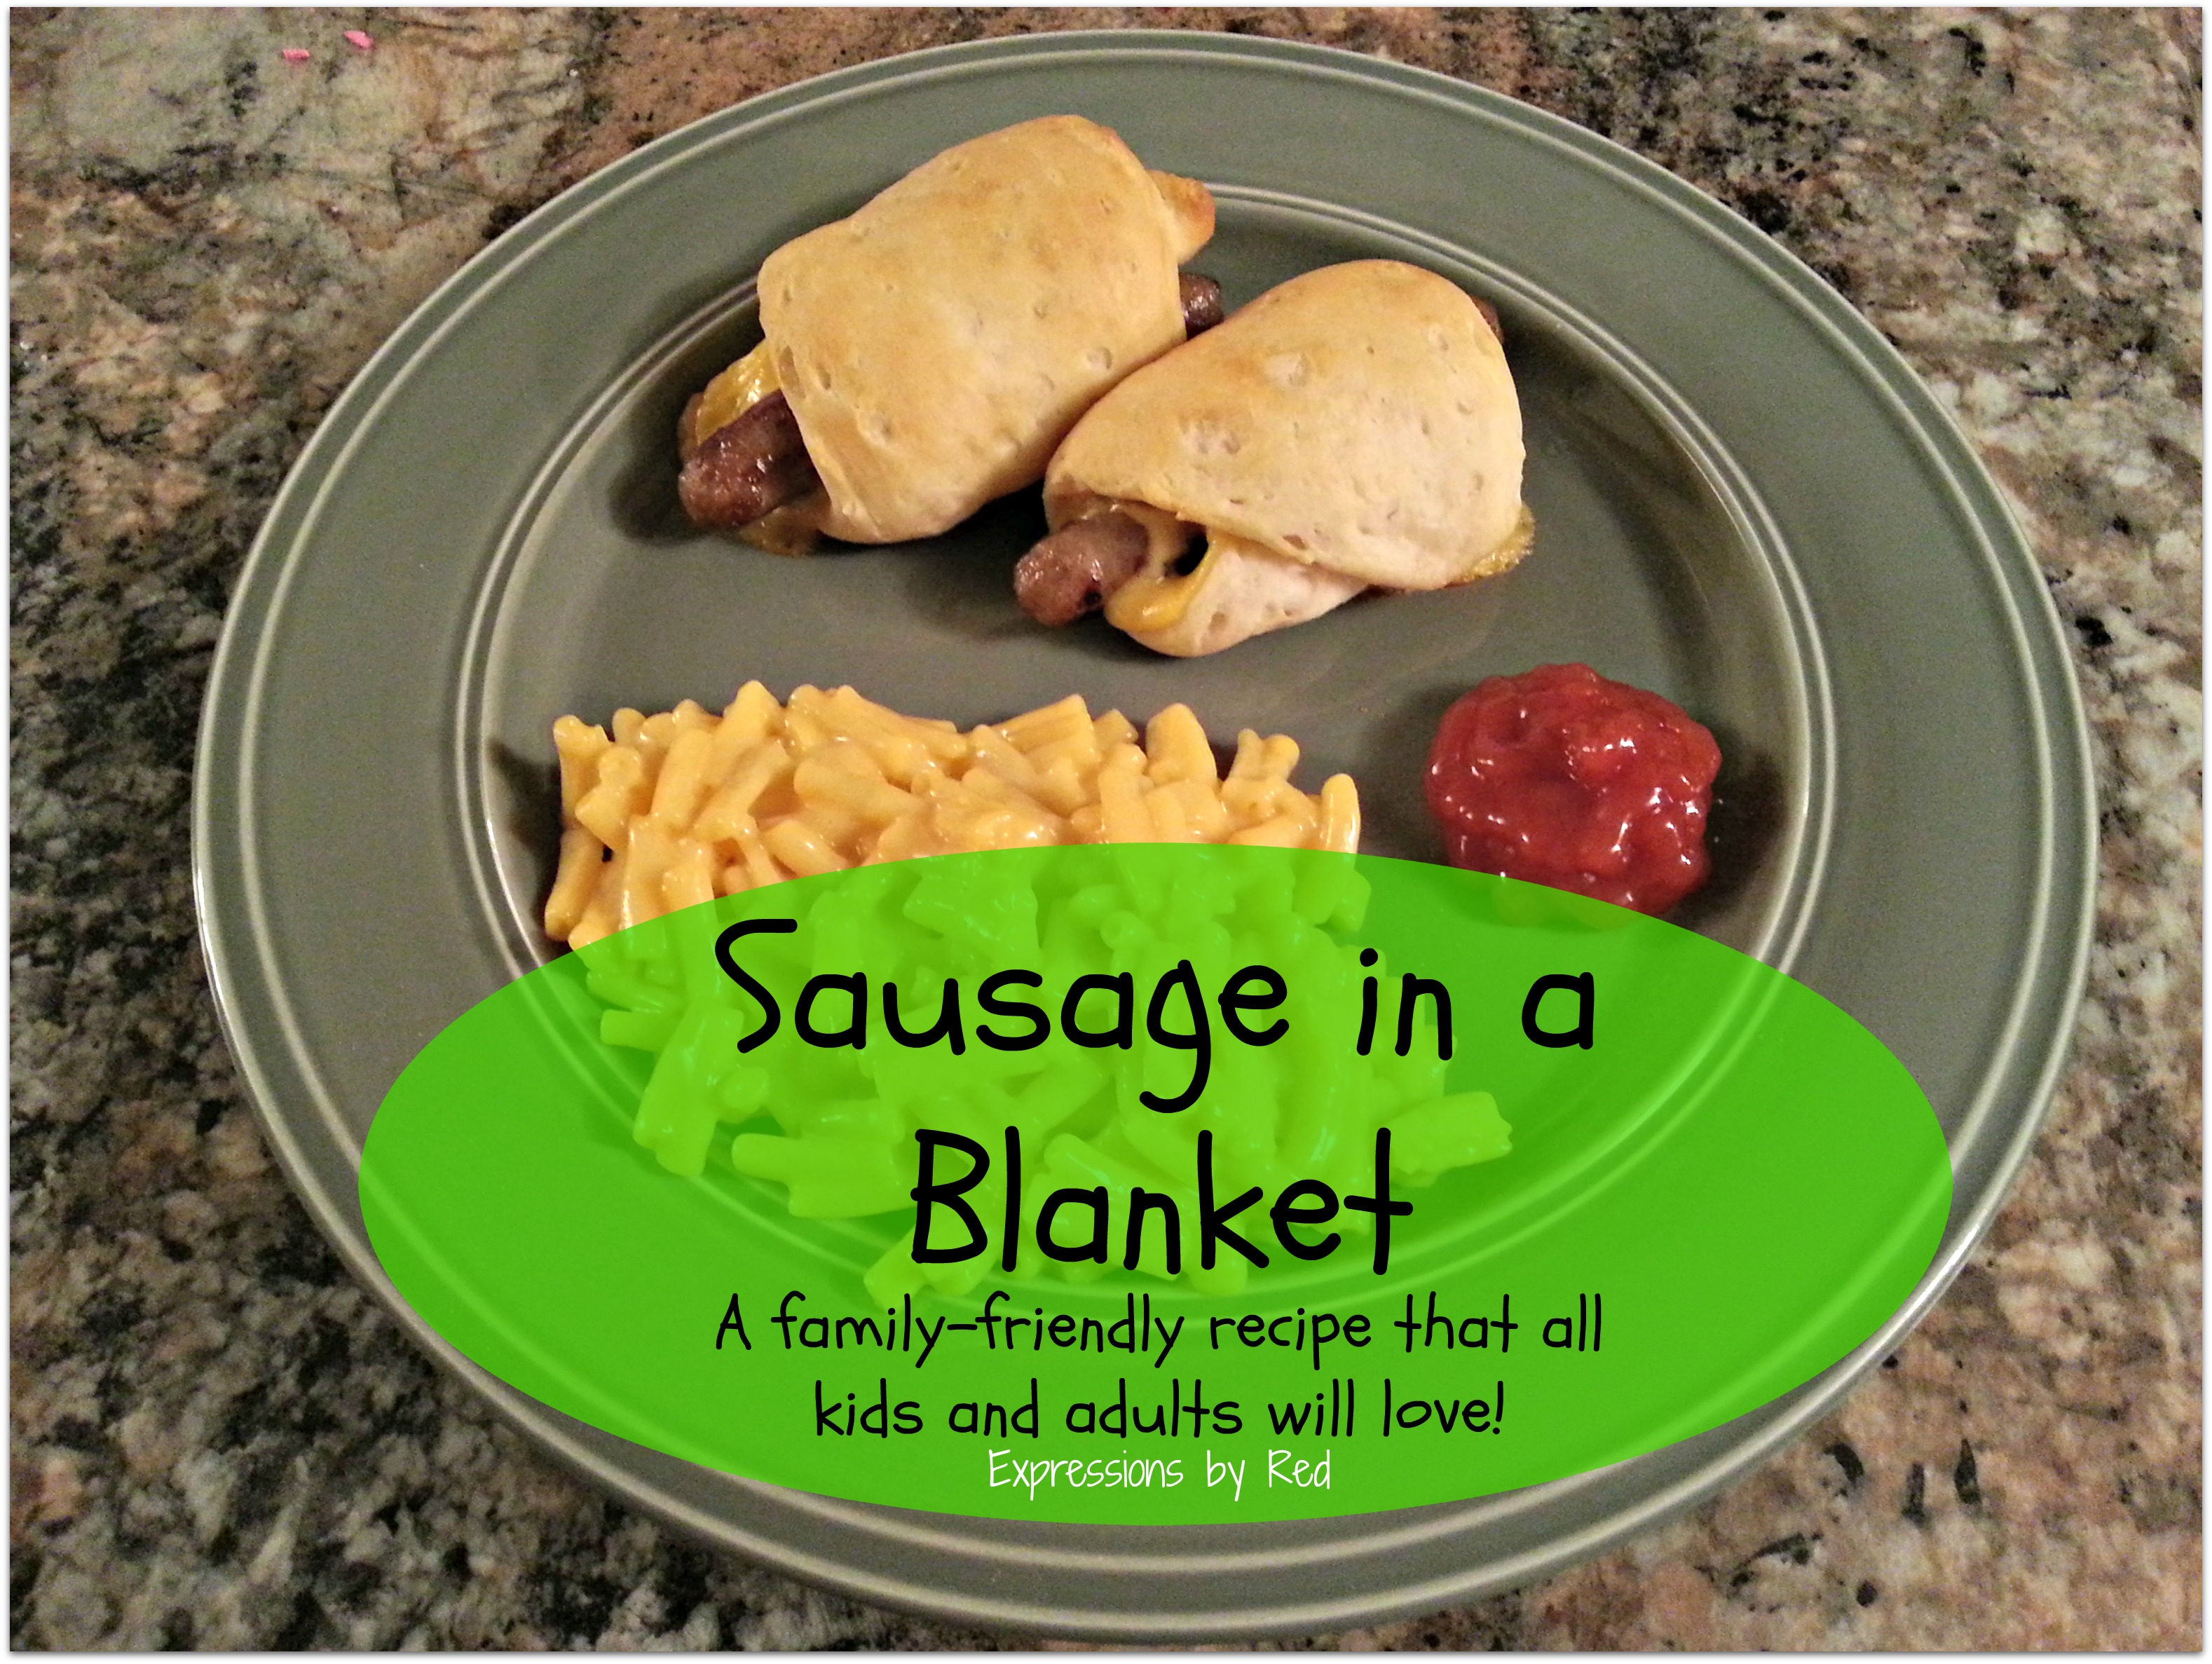 Sausage in a Blanket